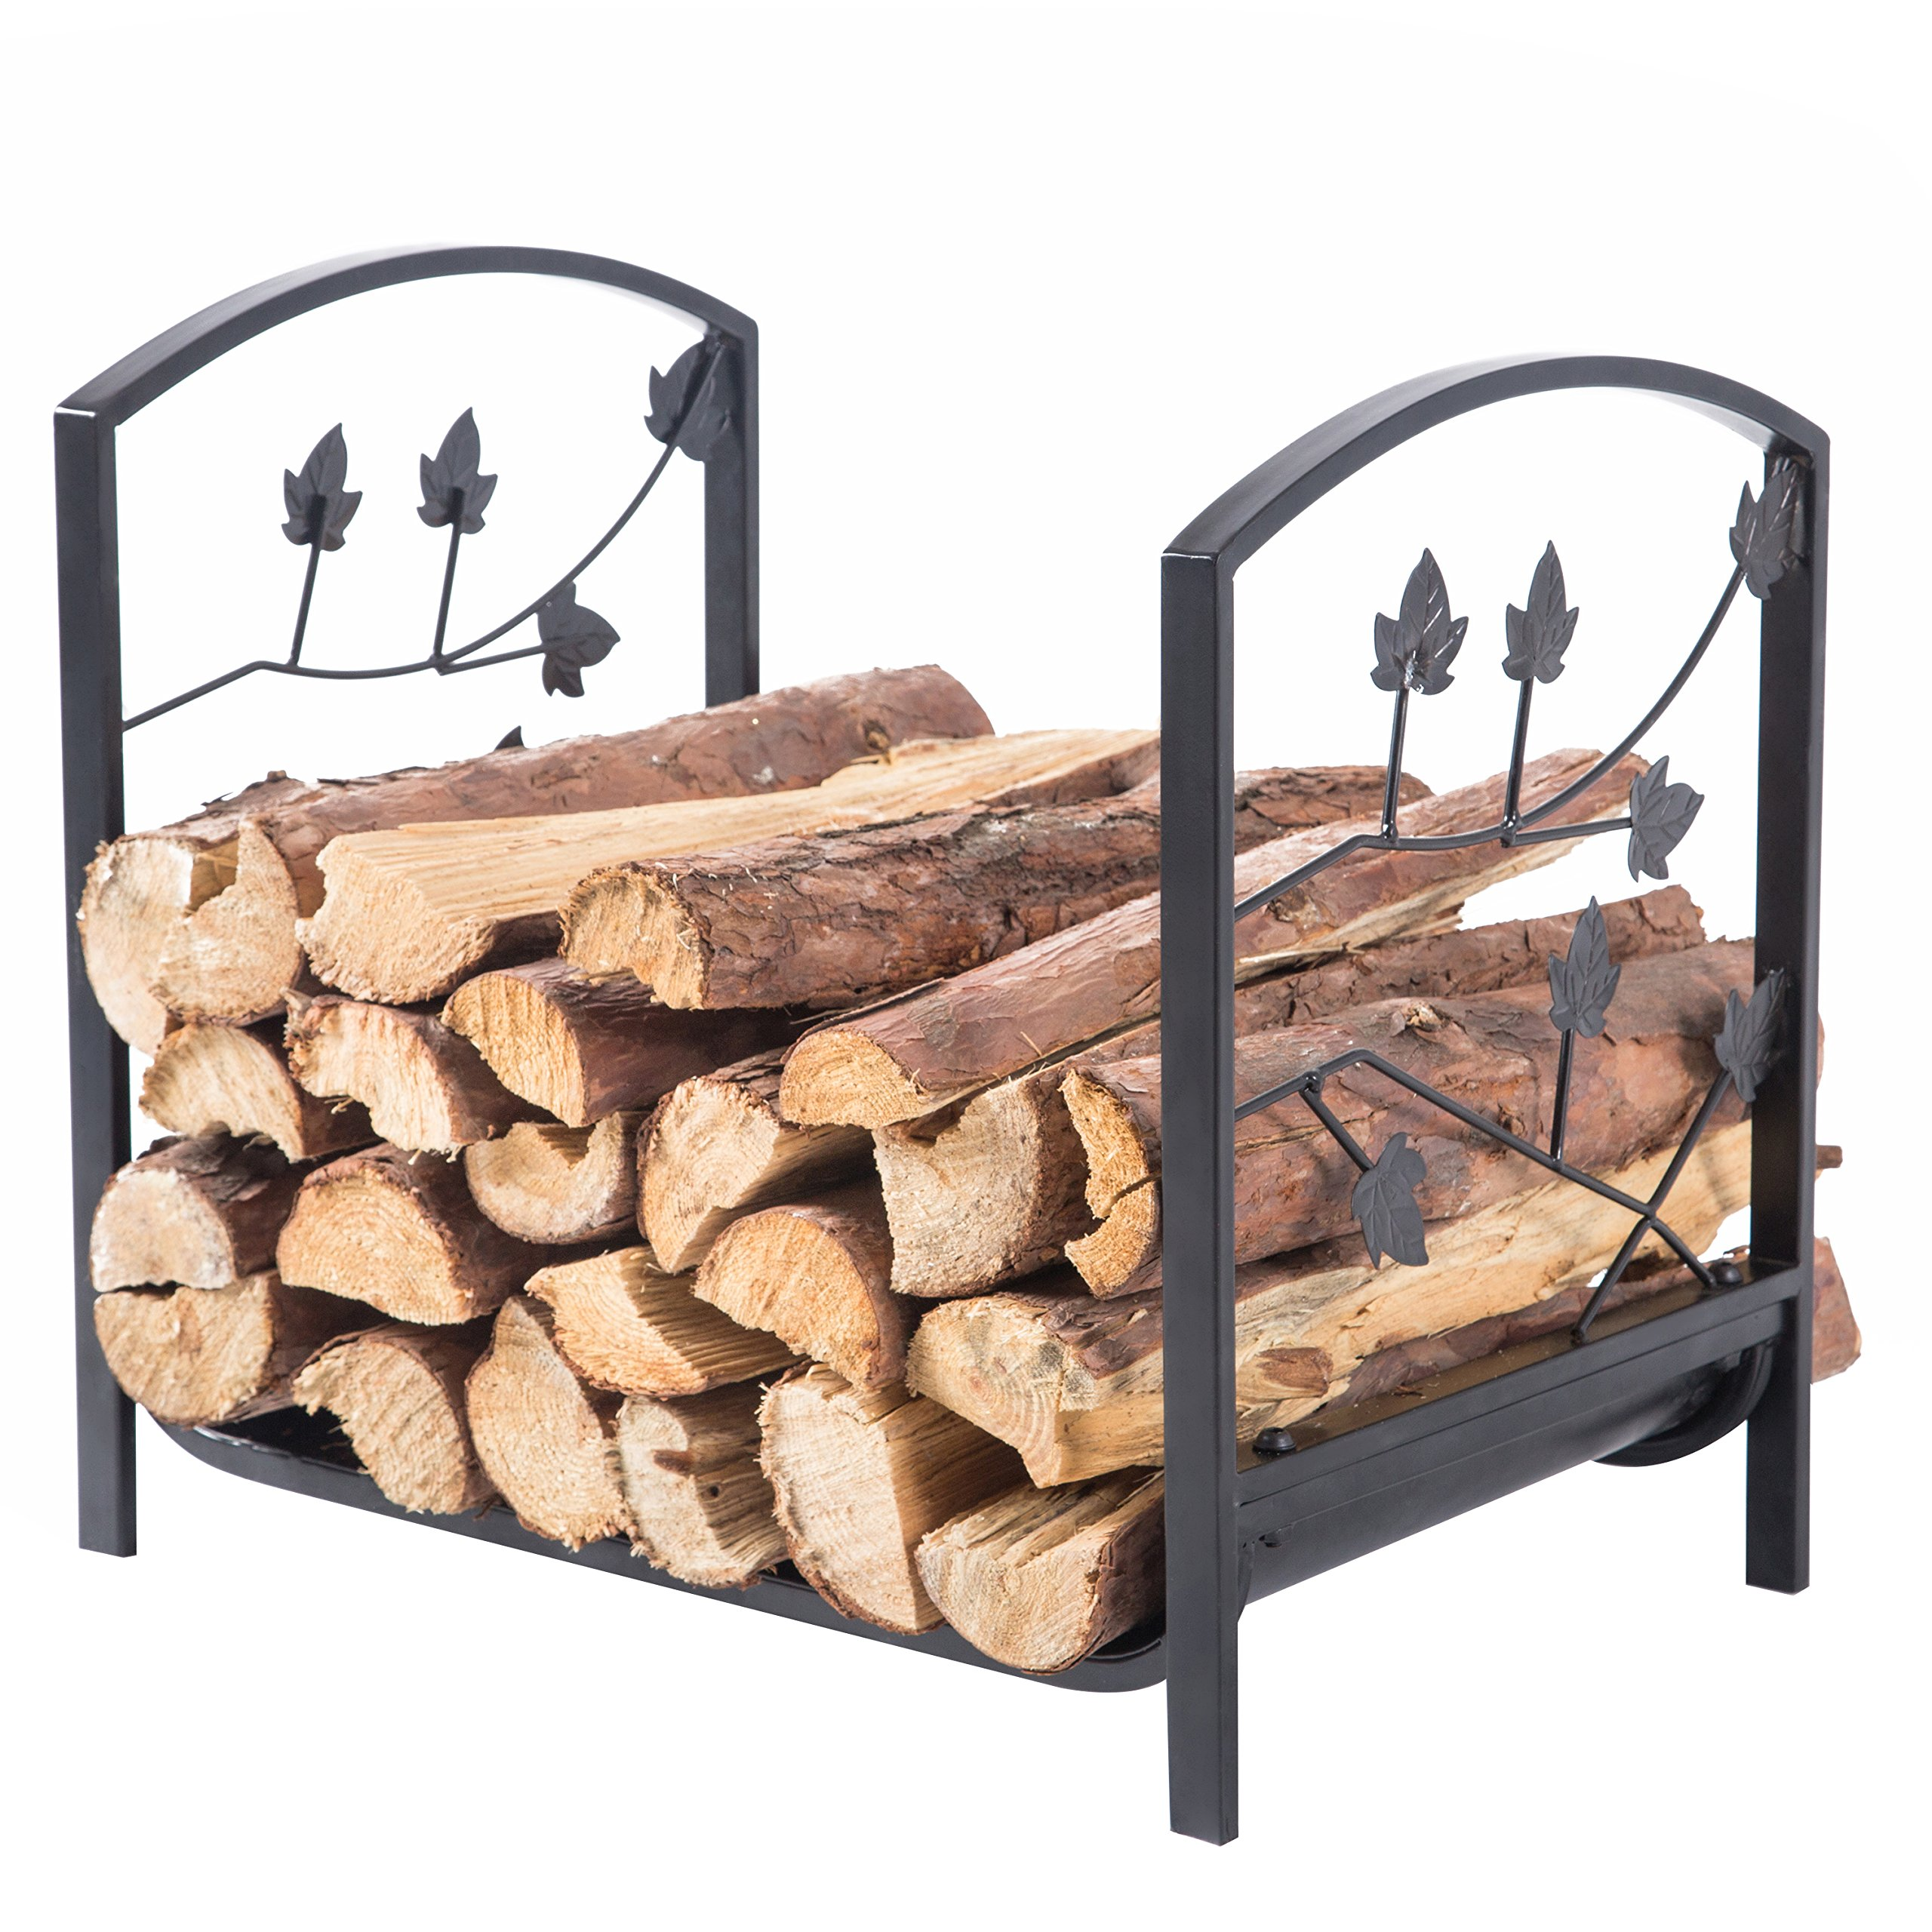 MyGift Rustic Black Metal Firewood Log Storage Holder Rack with Cutout Tree Branch Leaf Design by MyGift